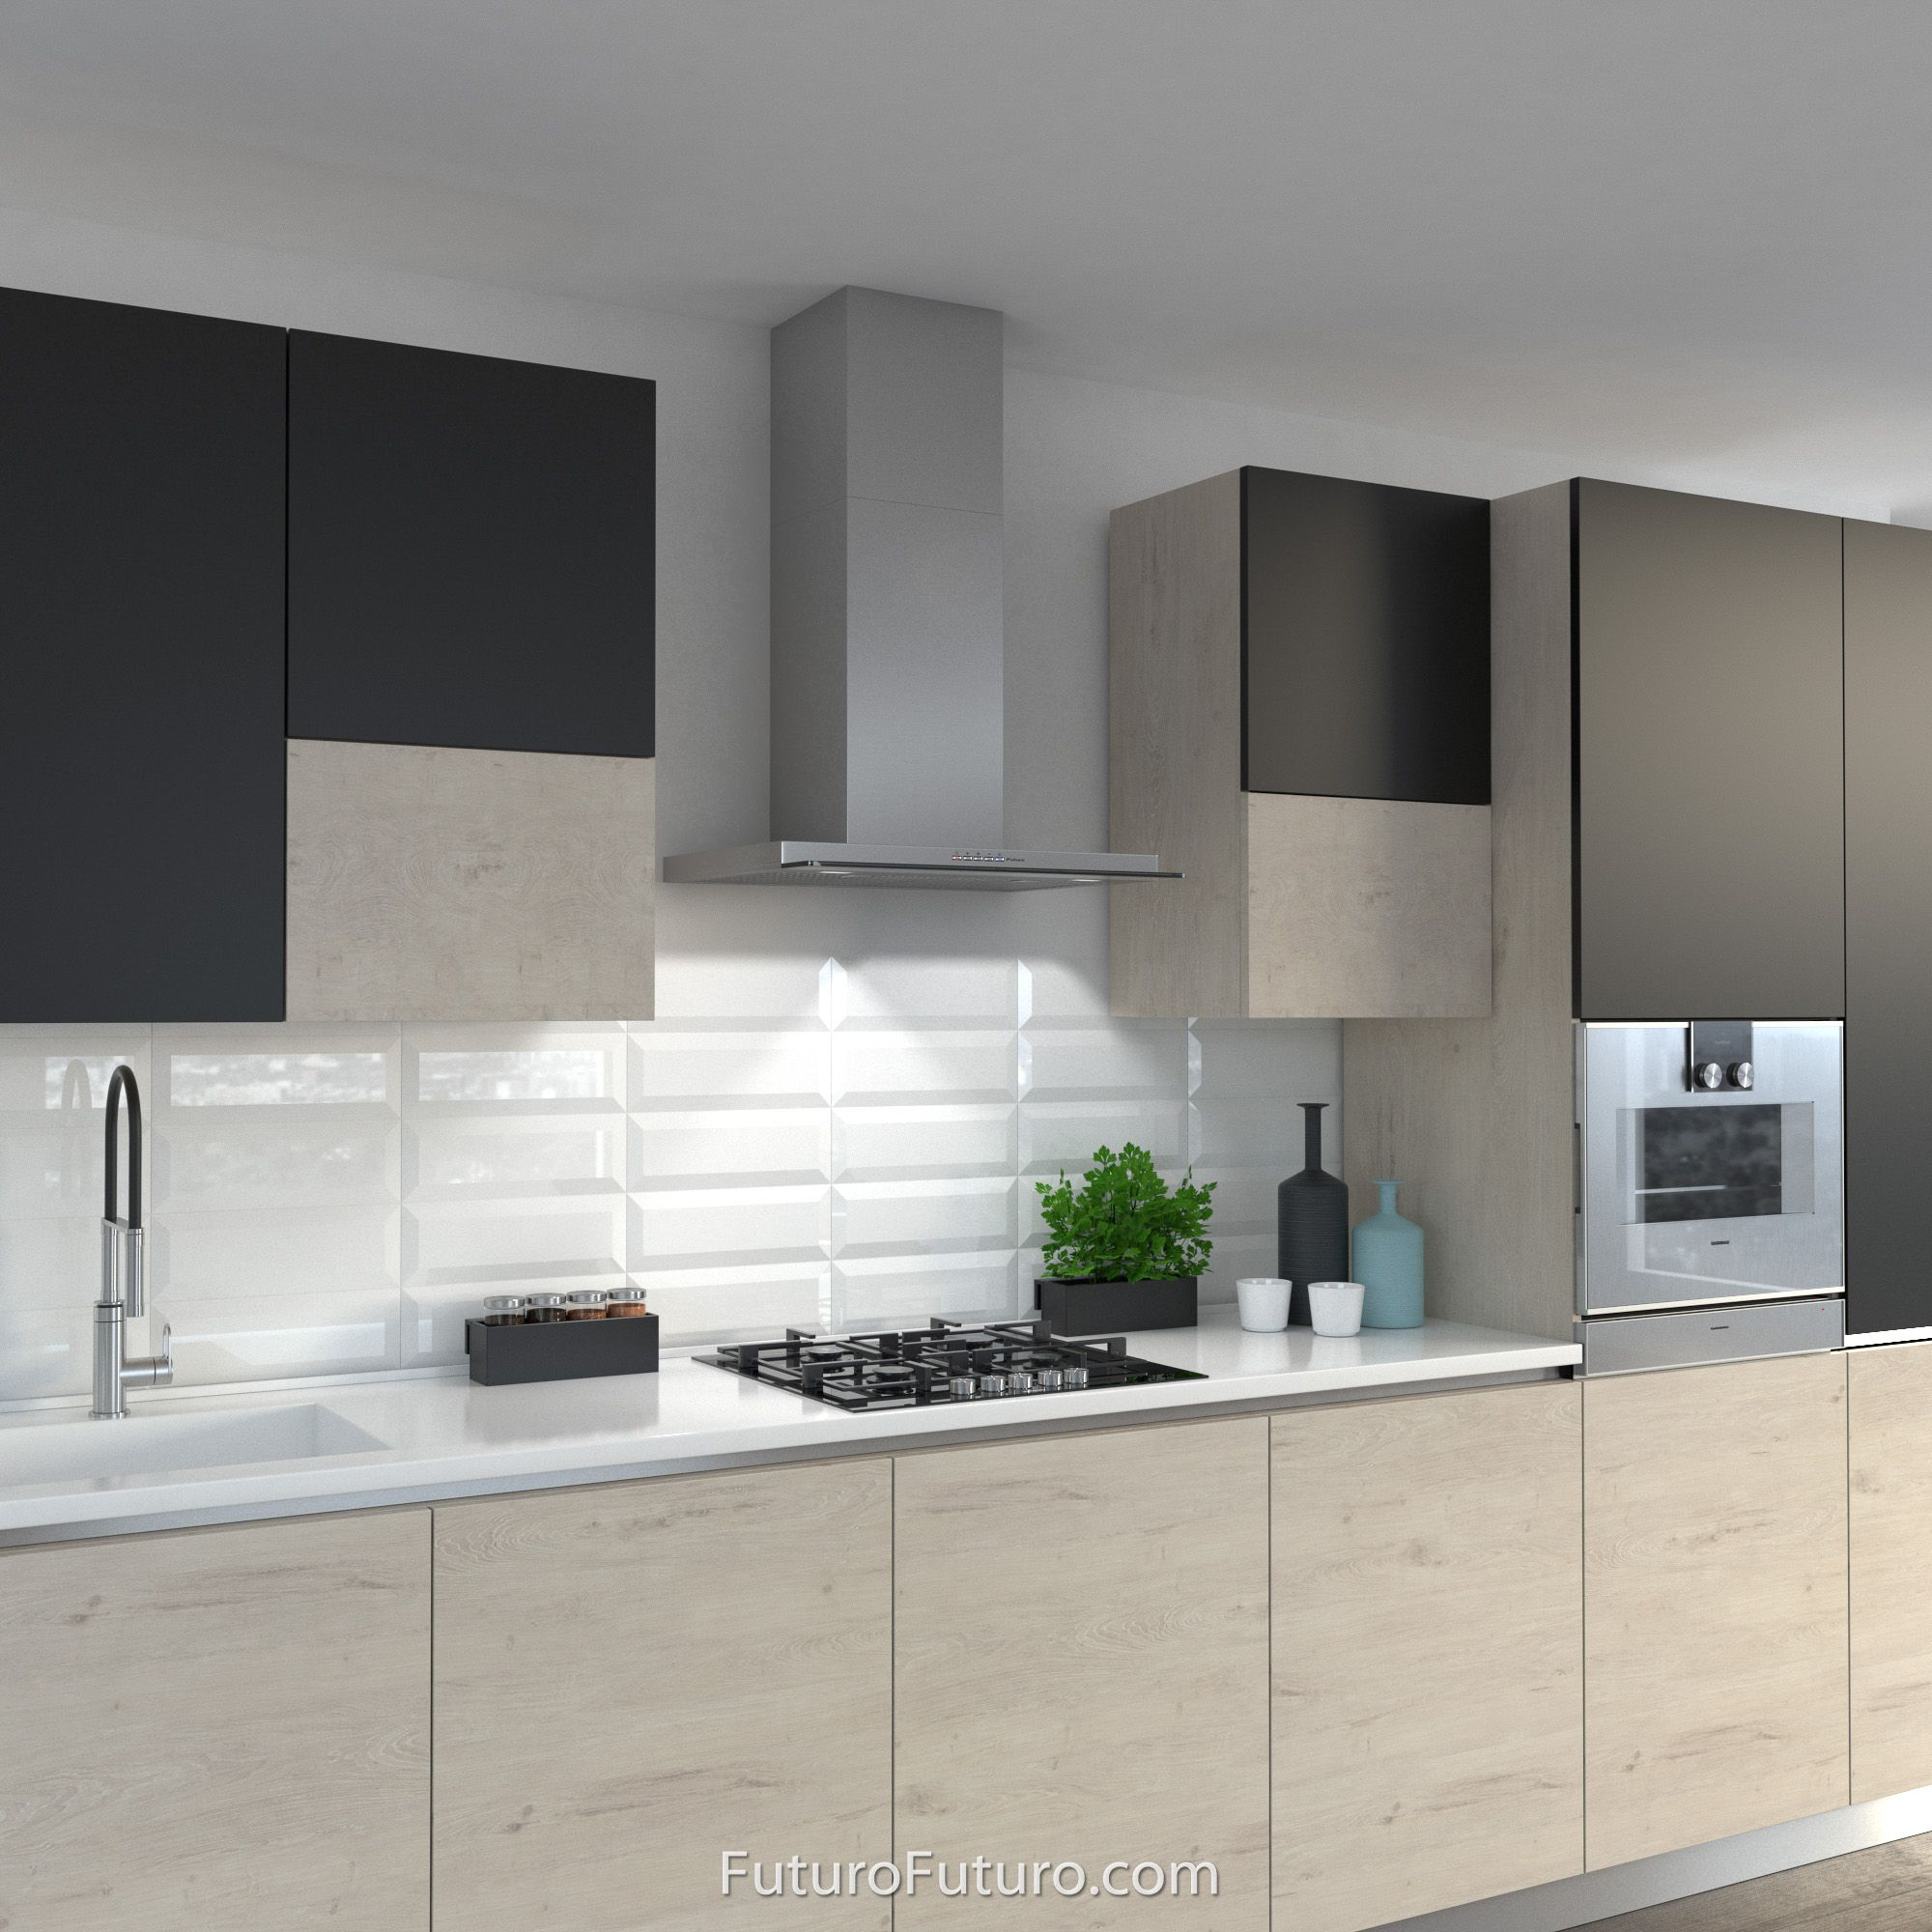 27 Venice Wall Mount Range Hood By Futuro Futuro In 2020 Contemporary Kitchen Design Kitchen Design Kitchen Interior